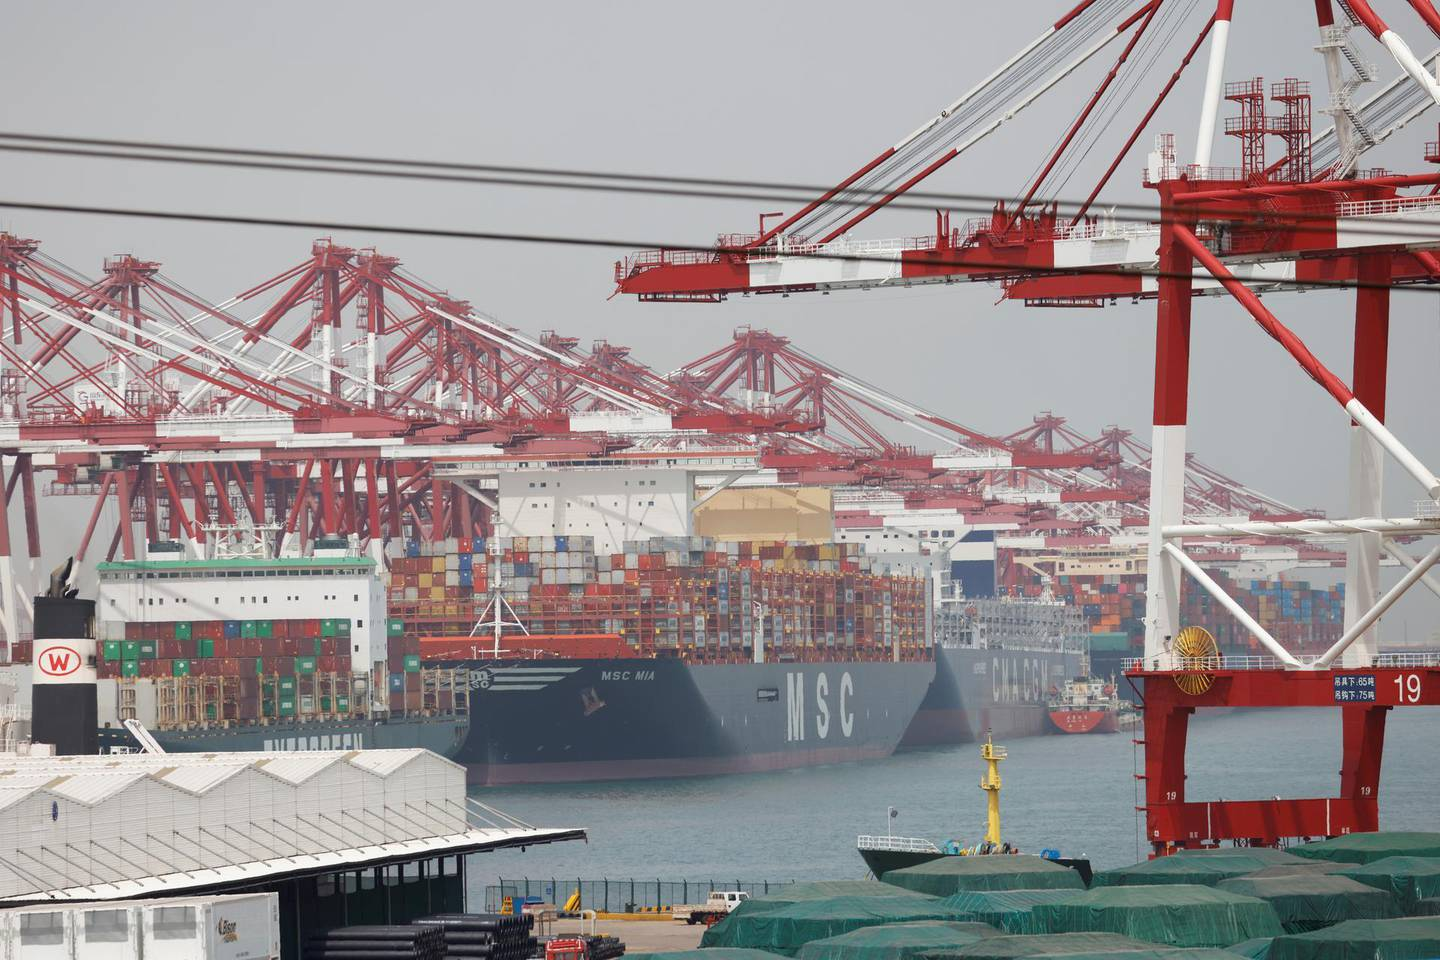 Container ships are seen at Qingdao port in Shandong province, China, following an oil spill in the Yellow Sea caused by a collision between tanker A Symphony and bulk vessel Sea Justice off the port, April 28, 2021. REUTERS/Carlos Garcia Rawlins